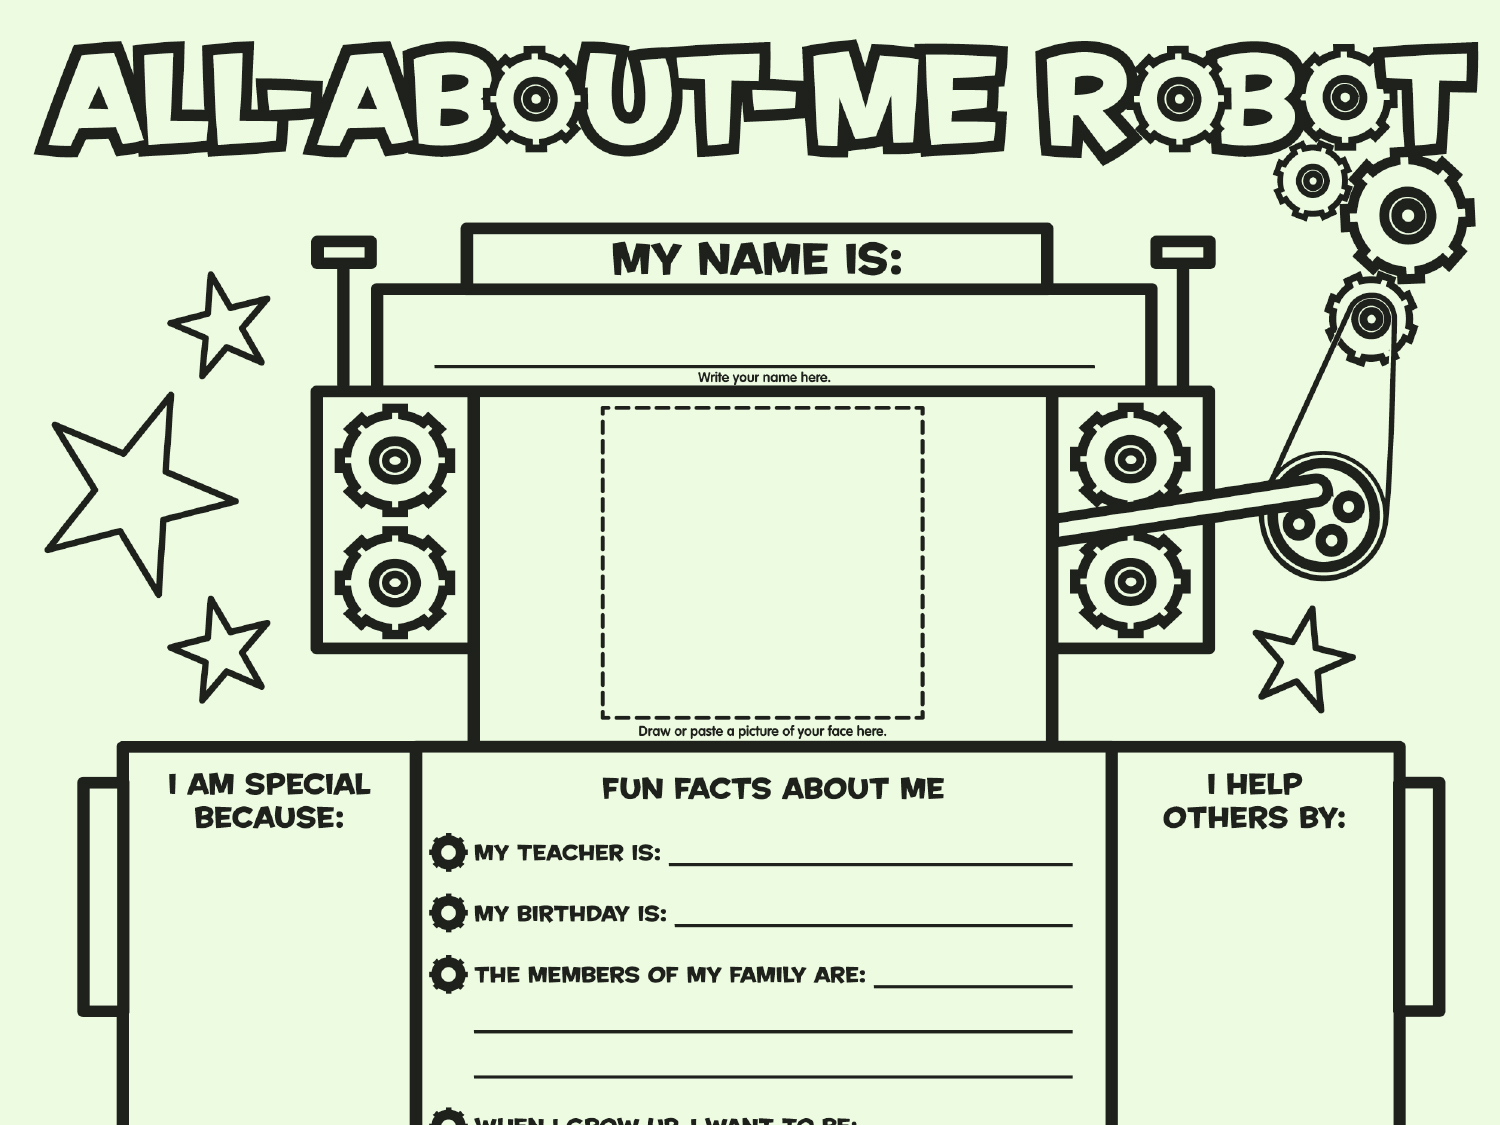 image about All About Me Poster Printable known as All Over Me Robotic: Fill-within just Poster Worksheets Printables